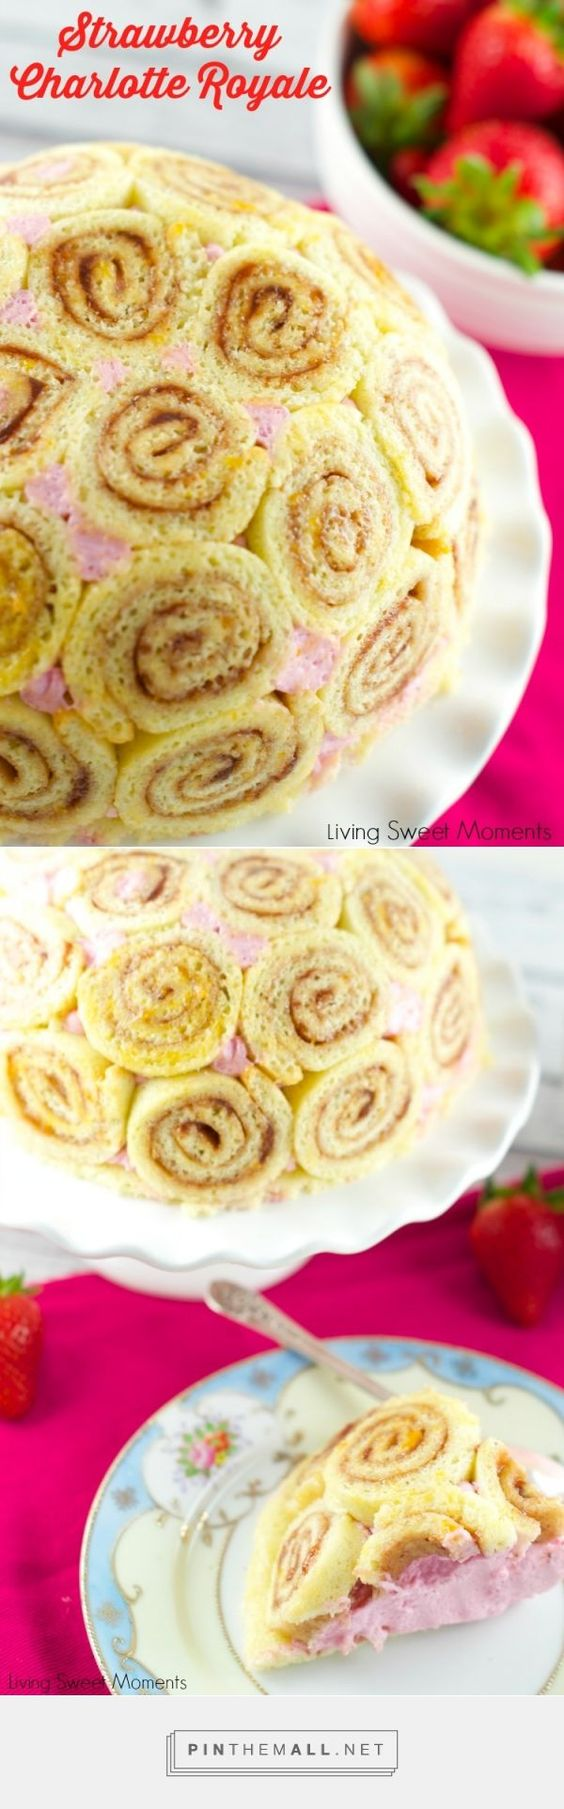 Strawberry Charlotte Royale Cake - This amazing strawberry cake is easy, delicious and beautiful. Jelly roll slices are filled with Berry Bavarian Cream. - created via http://pinthemall.net